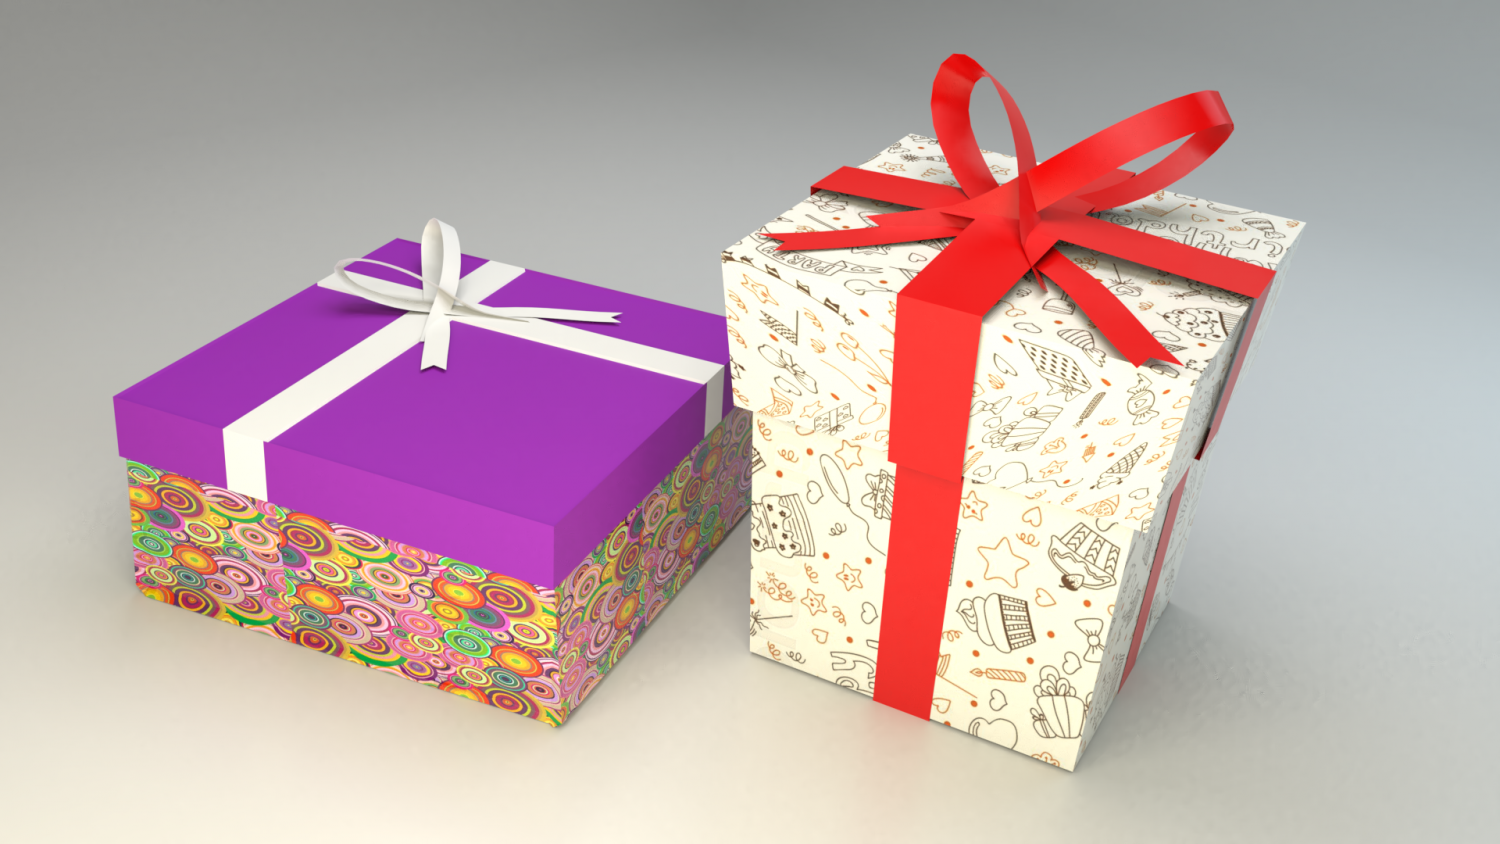 836c0d96e740 Low poly gift boxes of both cubical and rectangular cuboid form for party  decorations Gratis Modello 3D in Altro 3DExport